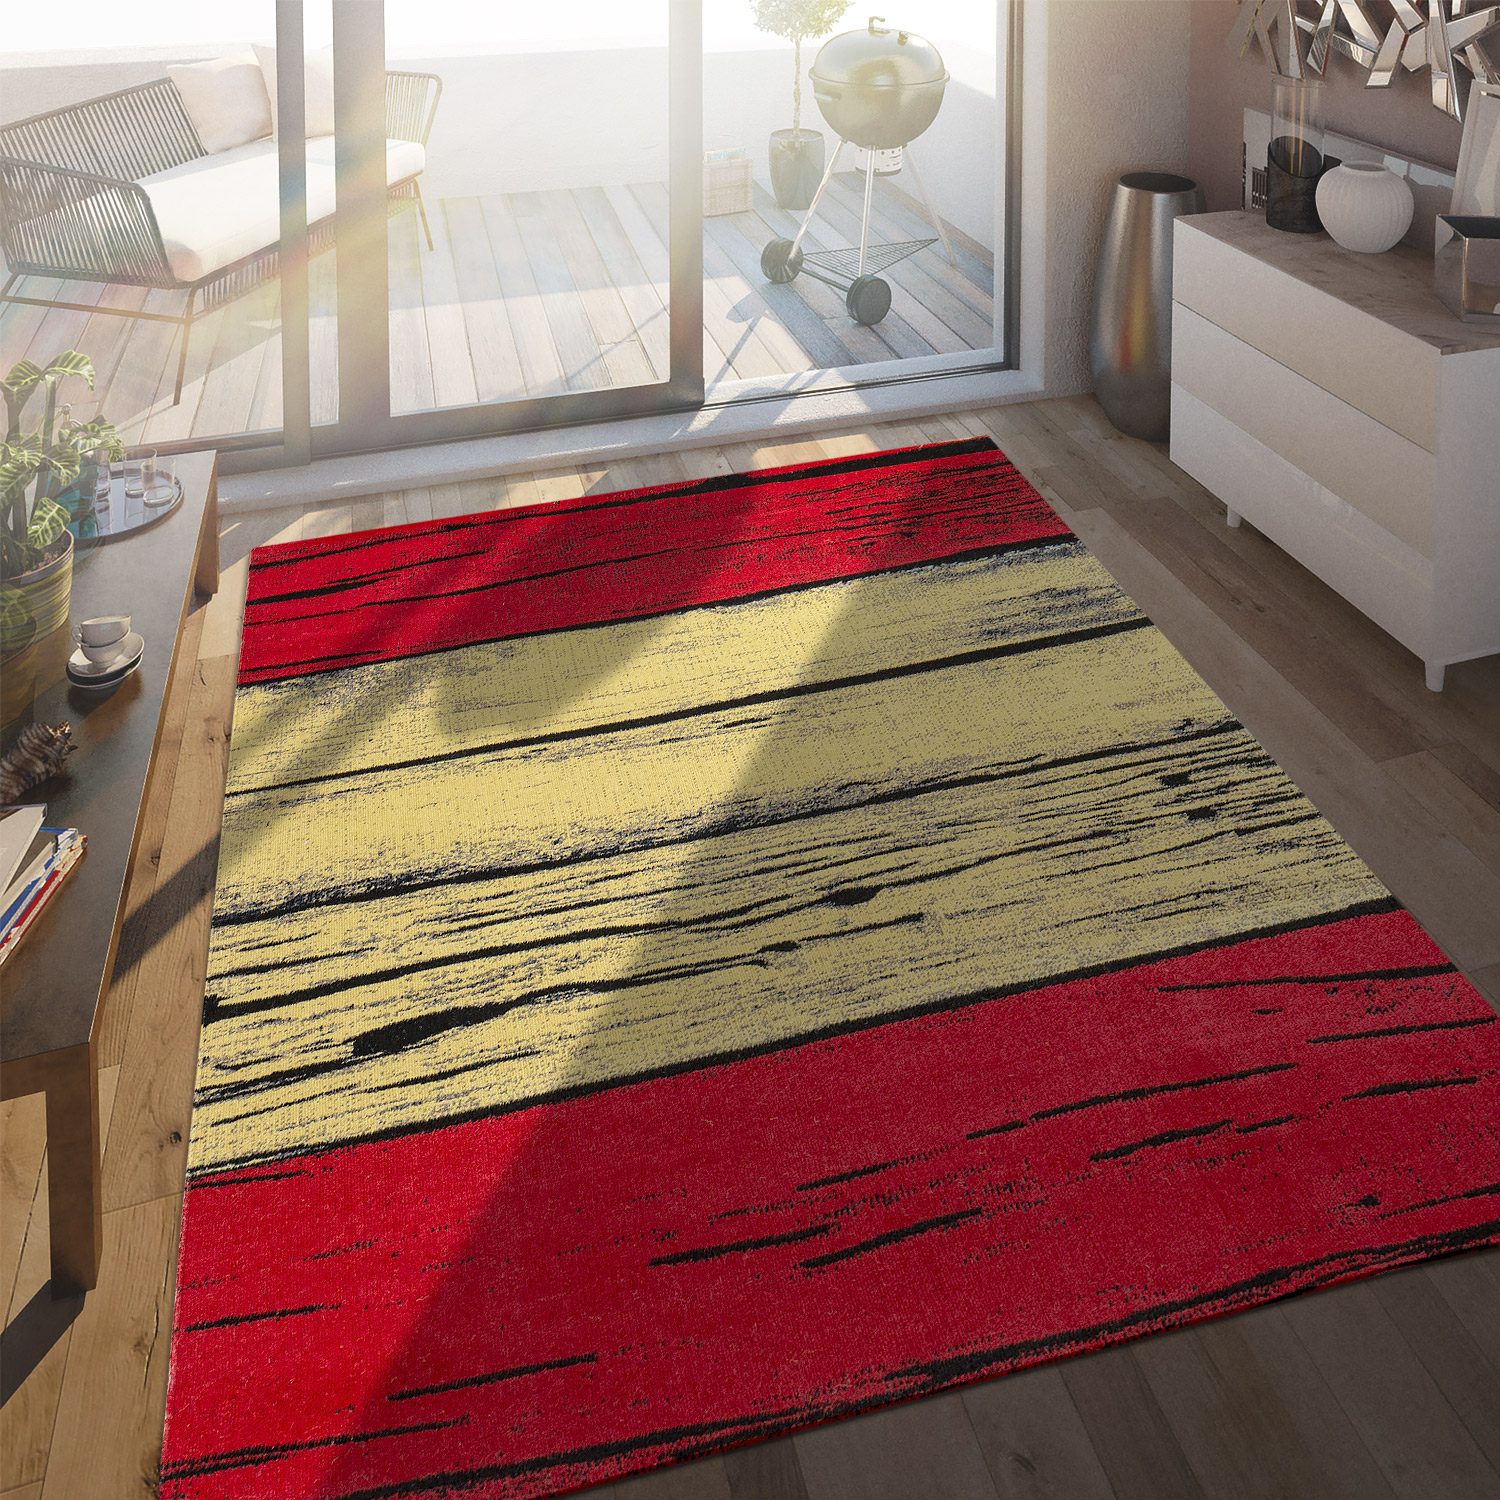 In- & Outdoor Terrassen Teppich Spanische Flagge Moderne Beton Optik